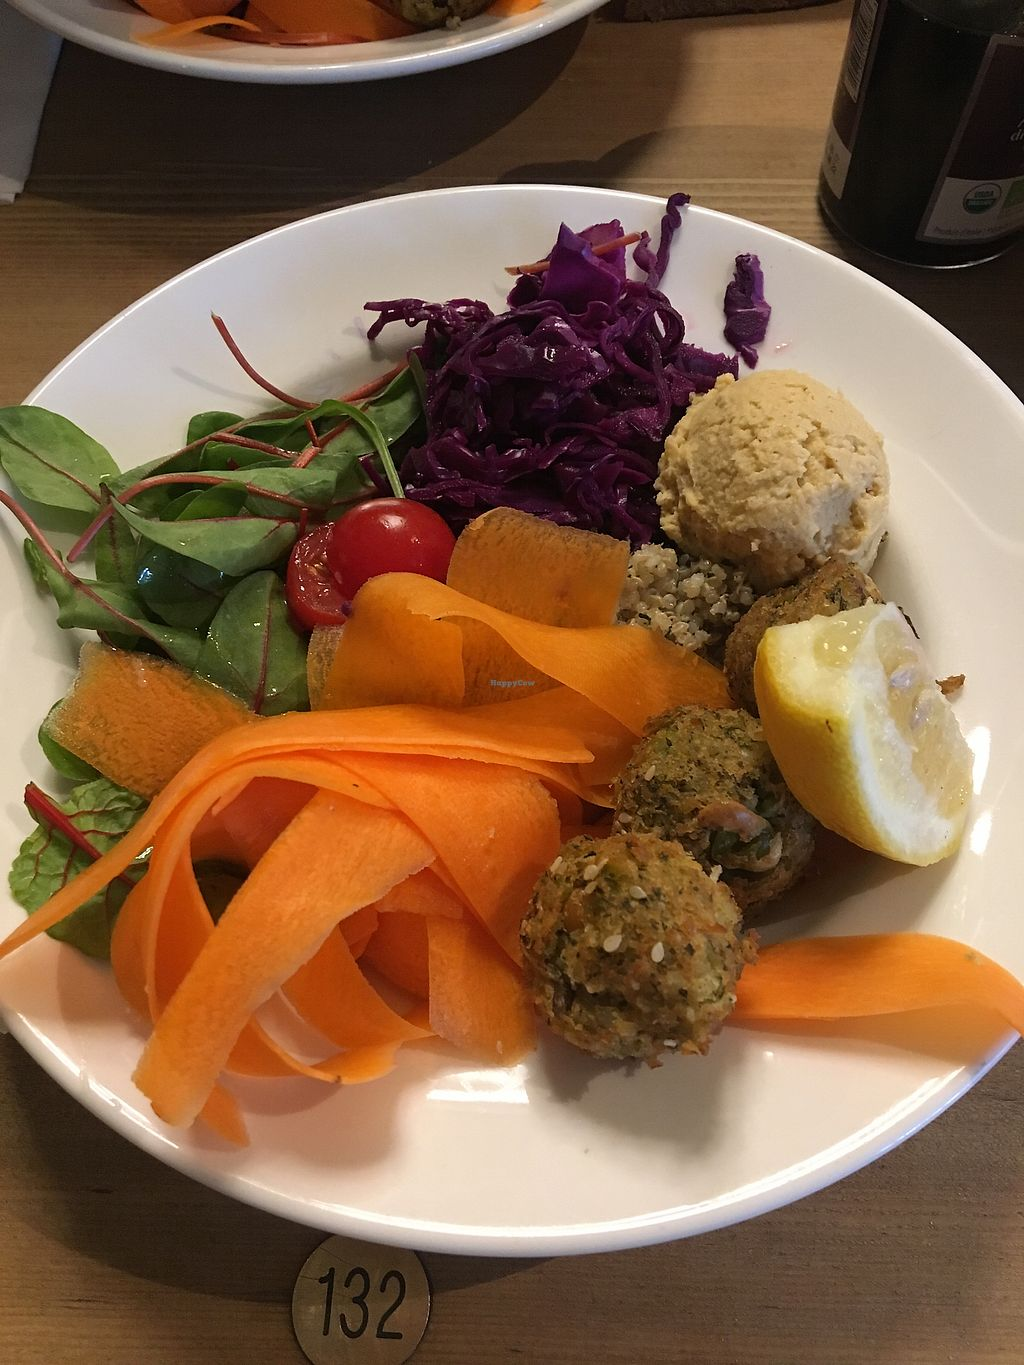 """Photo of Le Pain Quotidien - Saint-Lazare  by <a href=""""/members/profile/fyby"""">fyby</a> <br/>Falafel bowl <br/> February 15, 2018  - <a href='/contact/abuse/image/72219/359553'>Report</a>"""